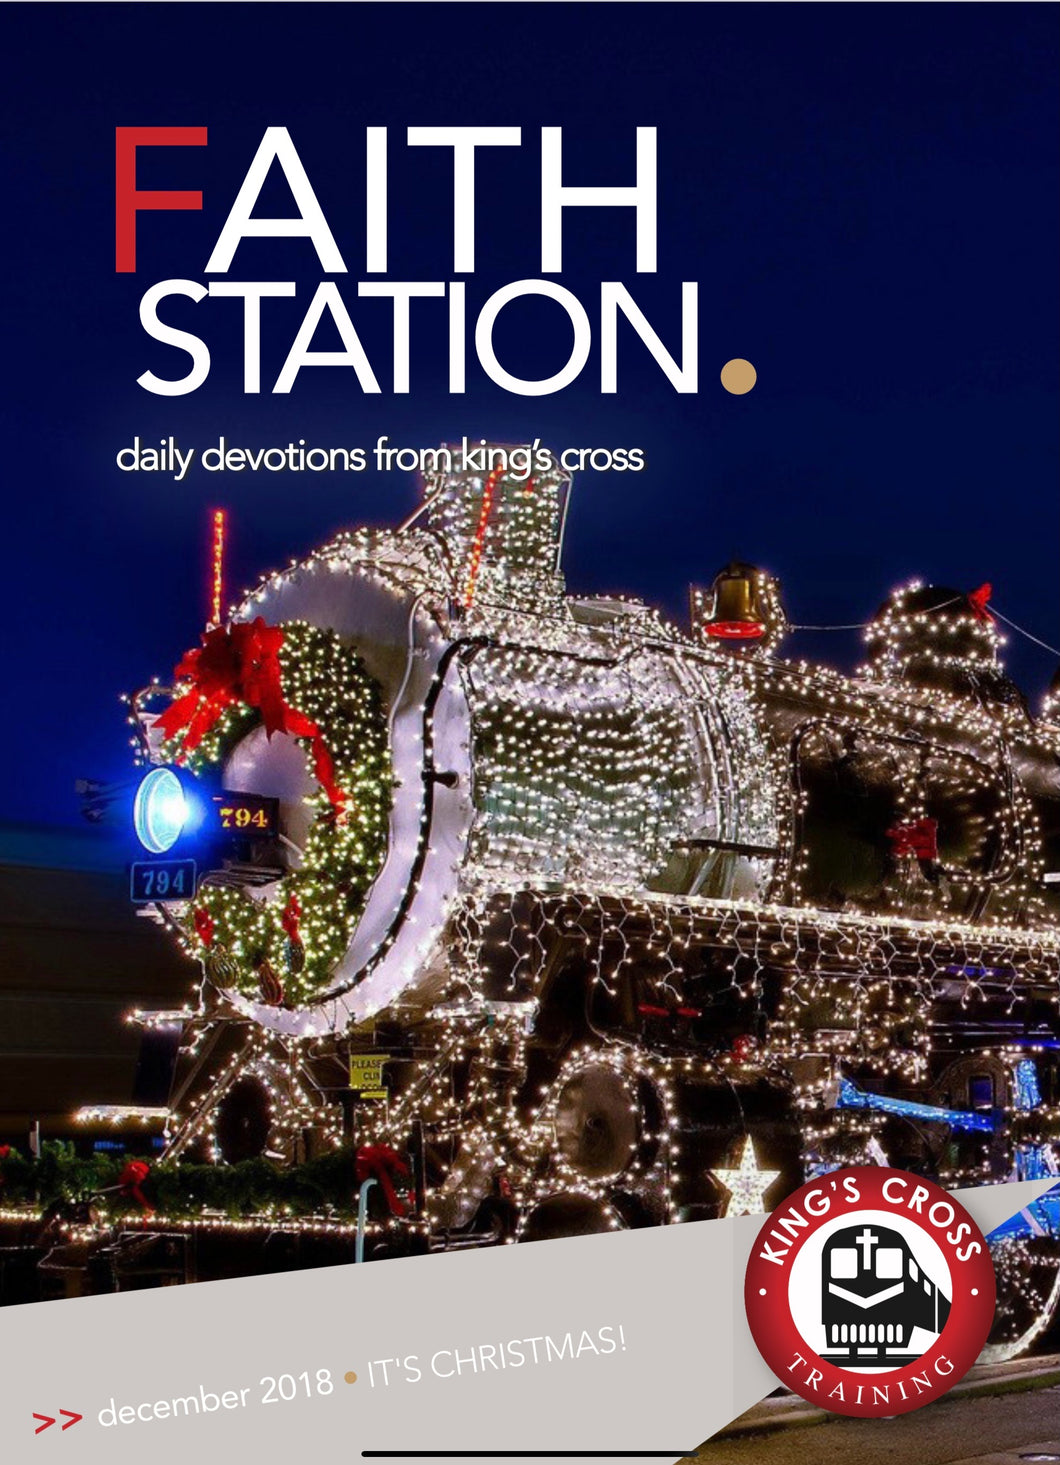 FAITH STATION - DECEMBER 2018